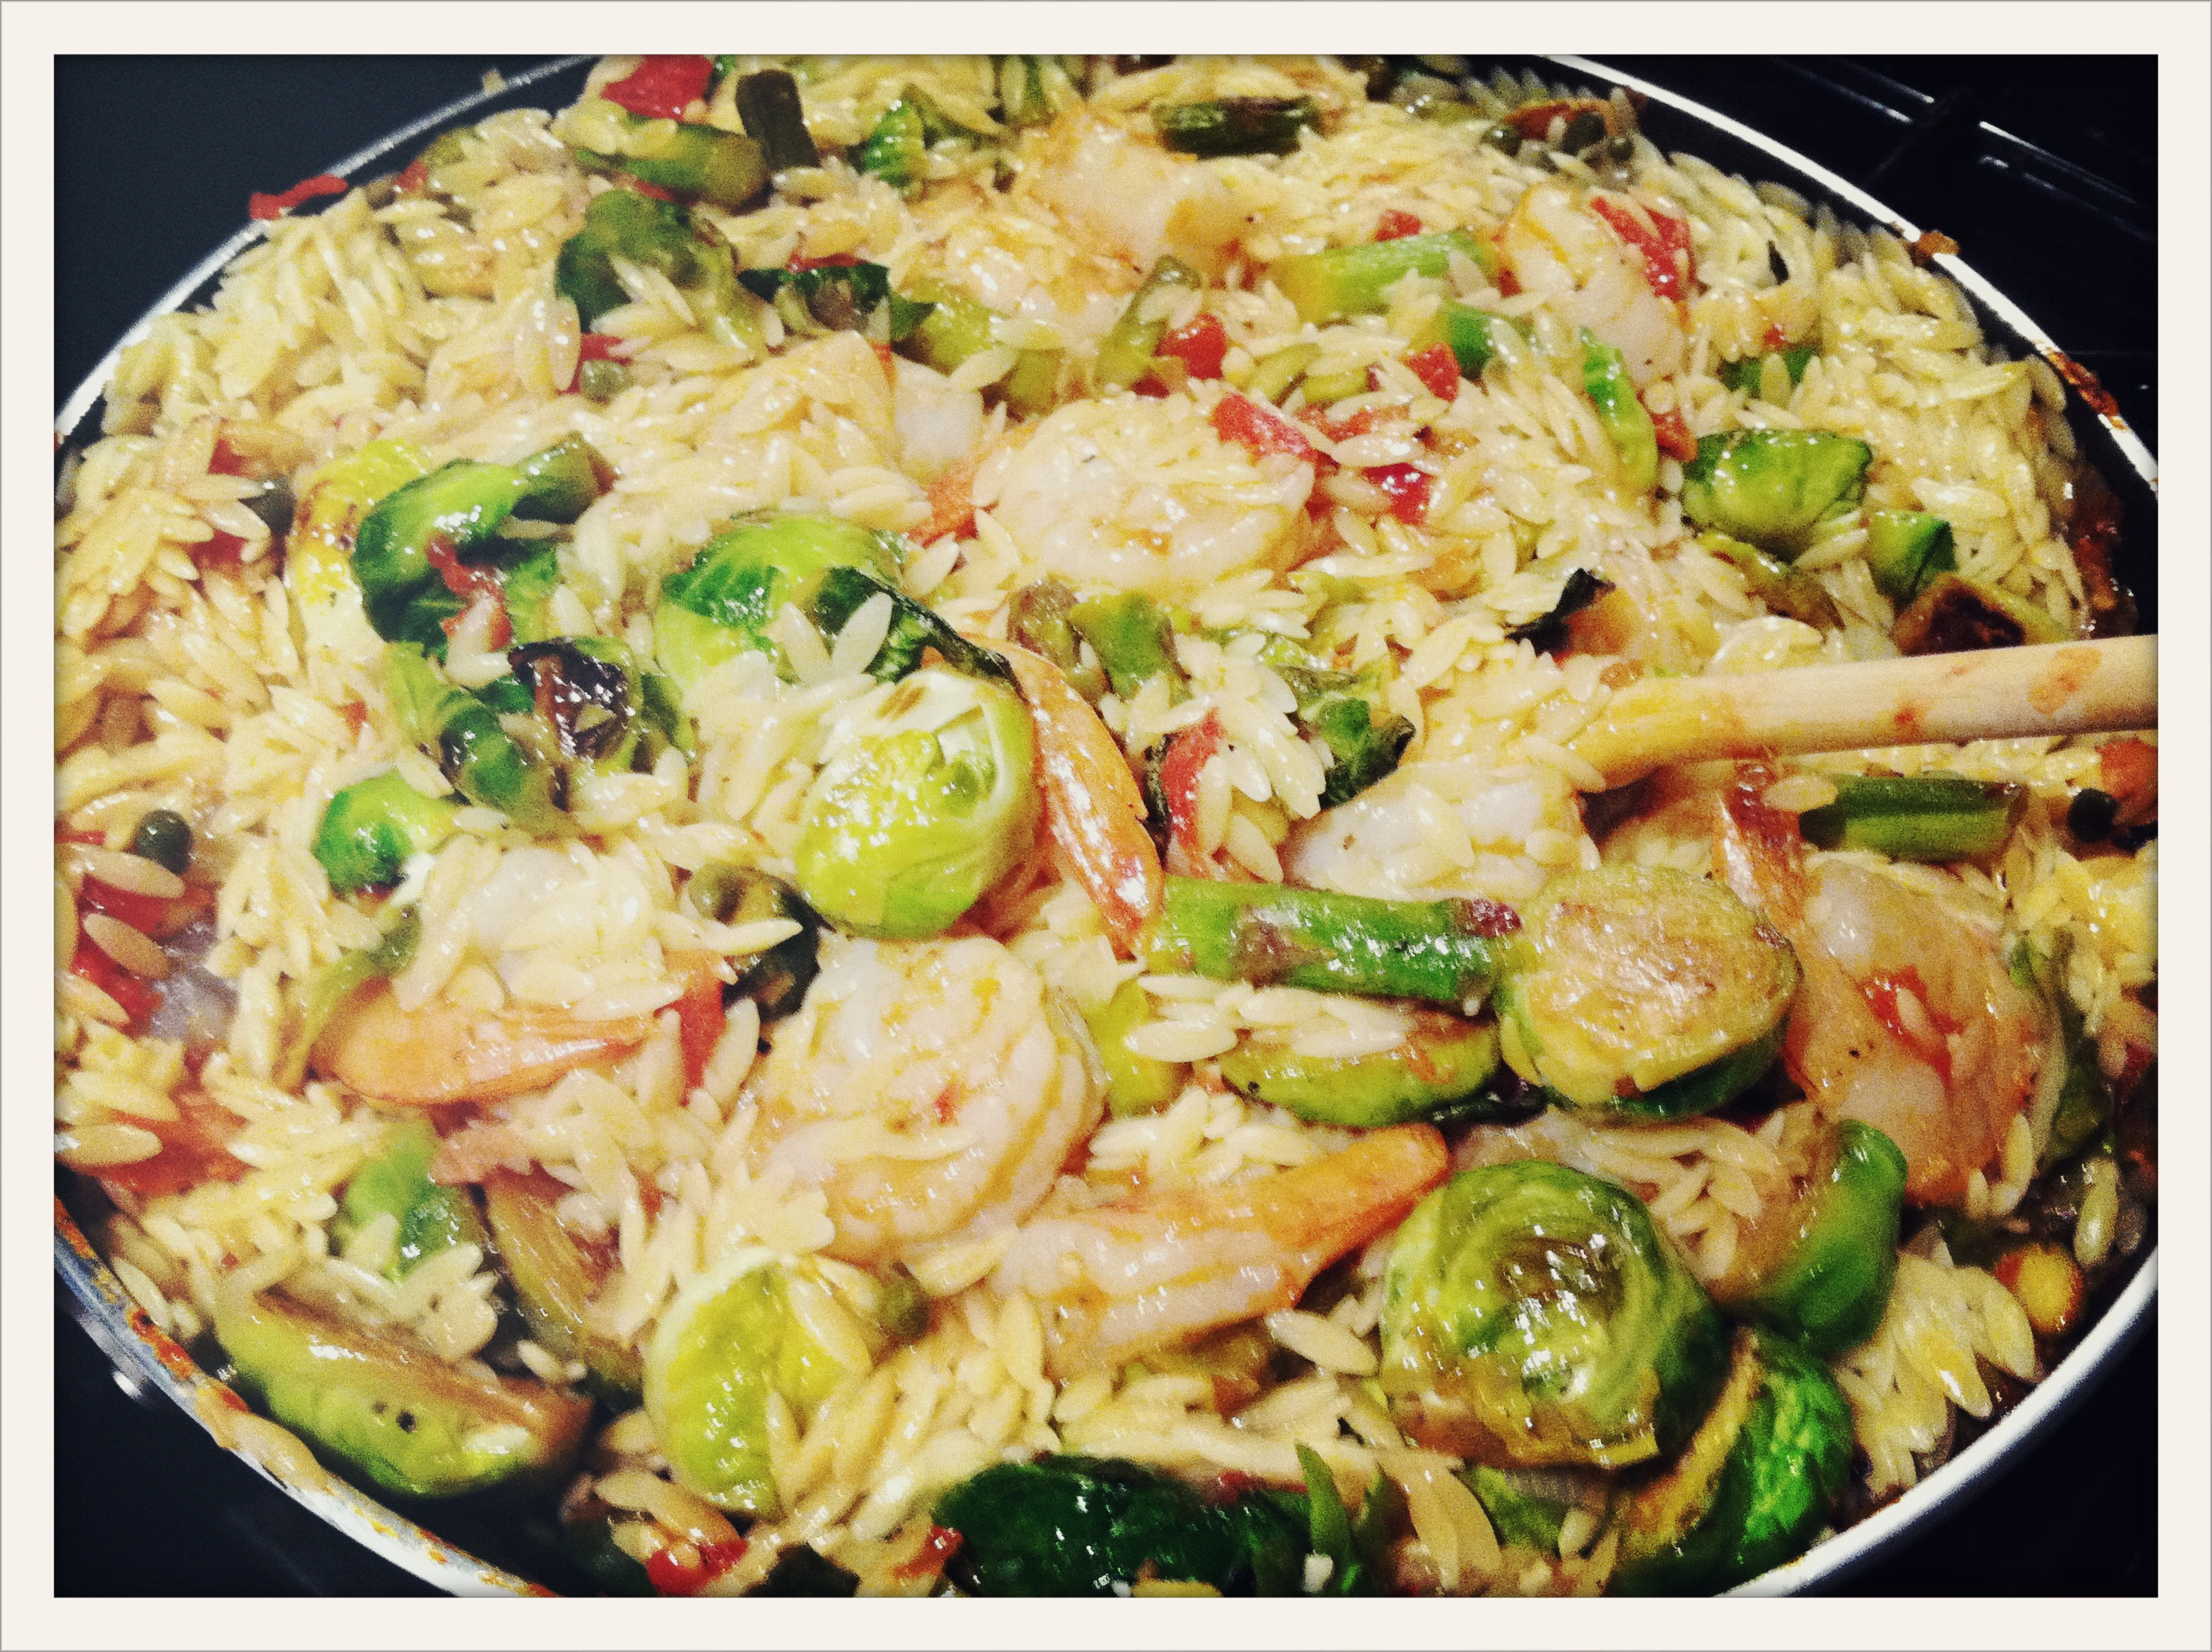 Lemon Orzo Pasta with Brussels Sprouts